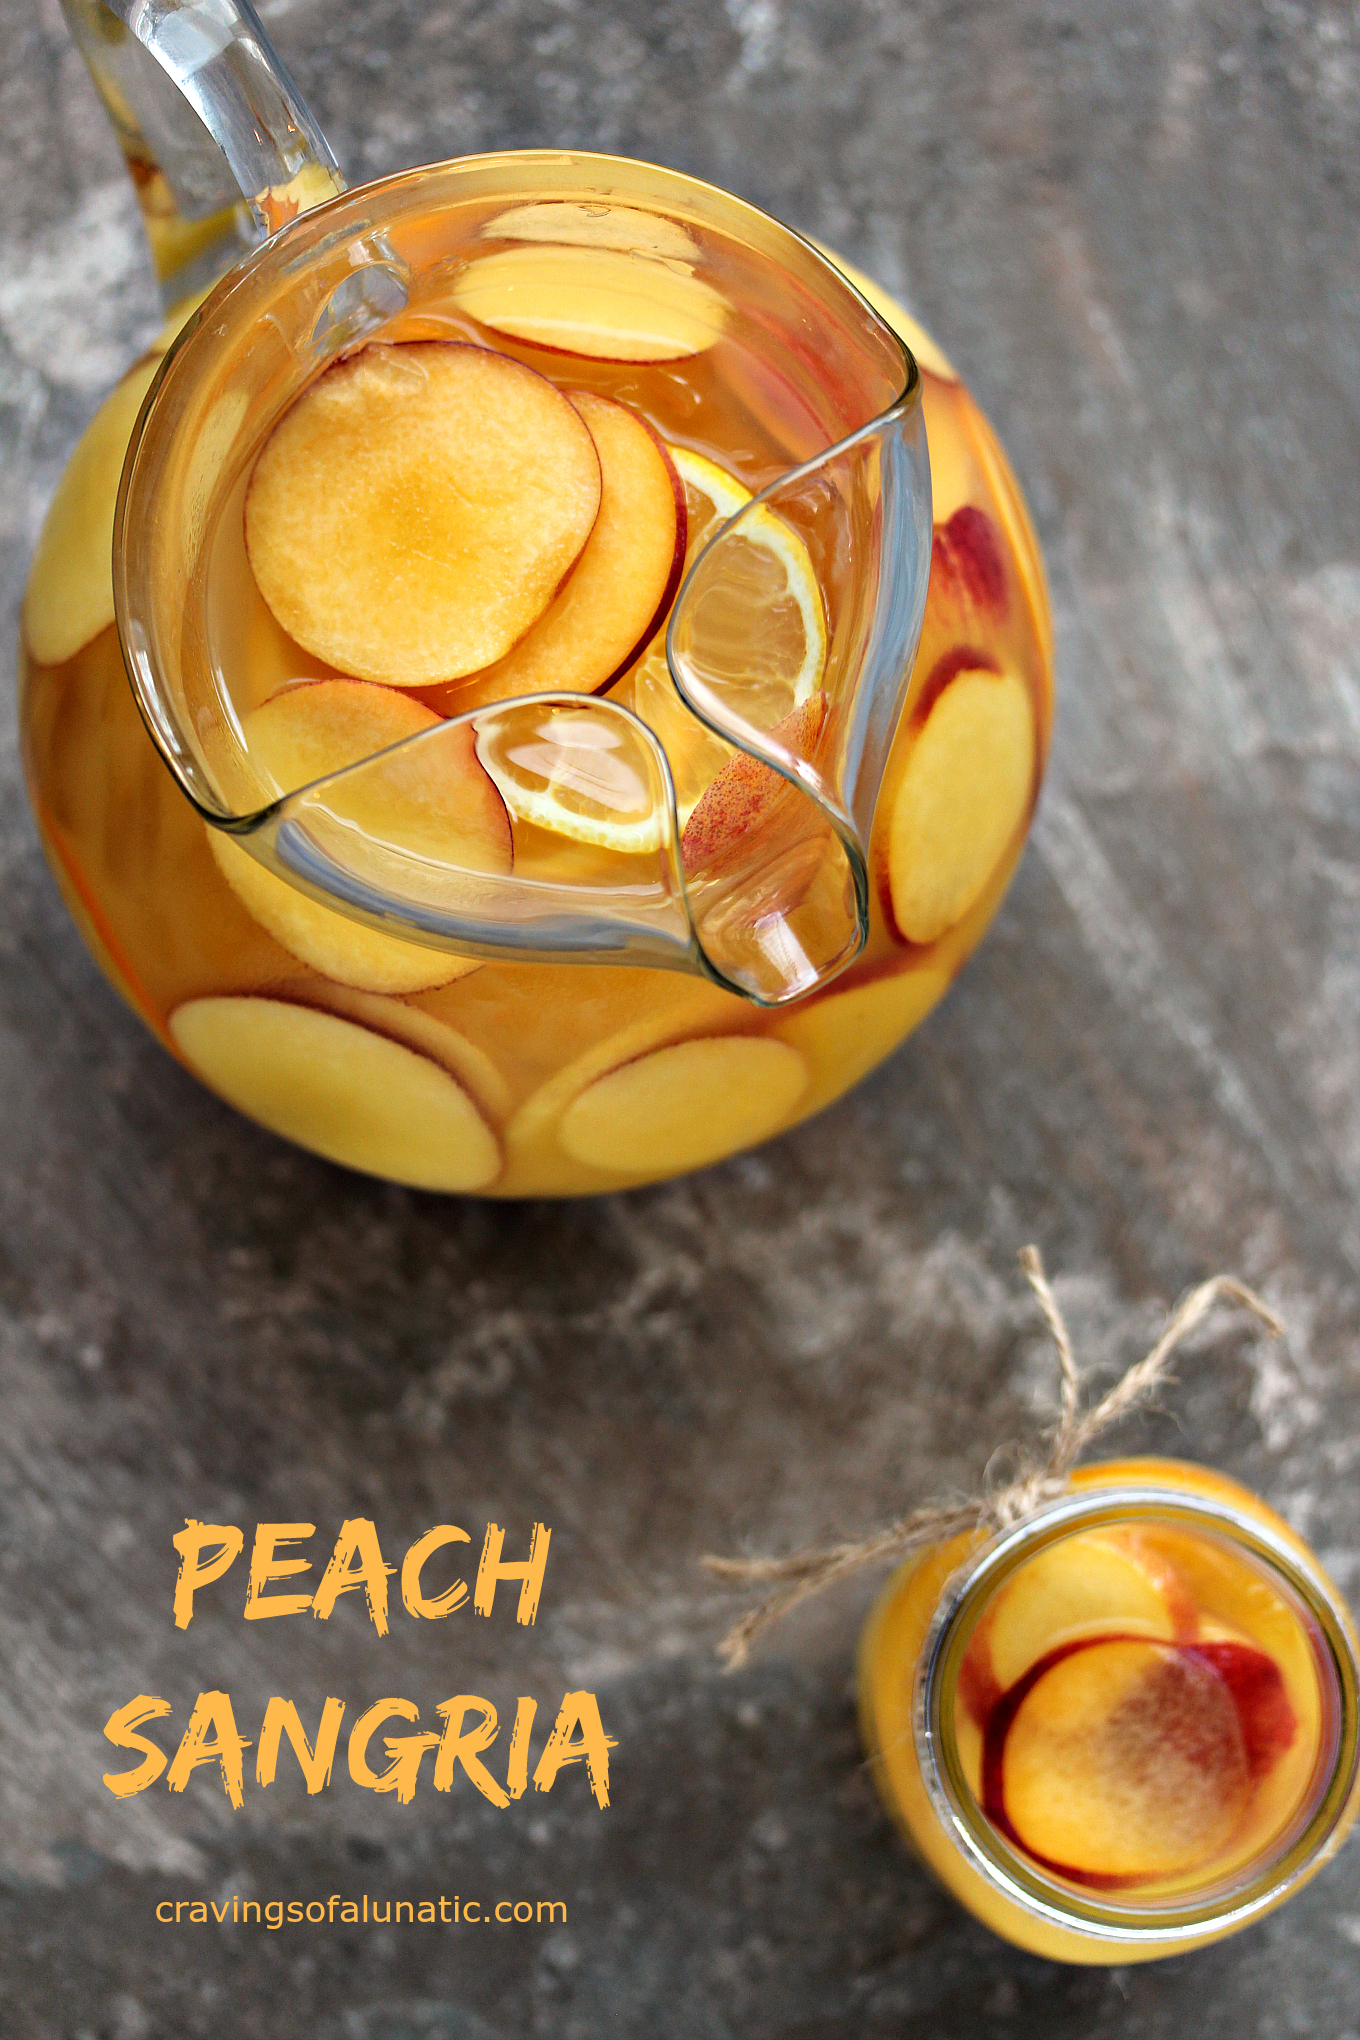 Peach Sangria from cravingsofalunatic.com- This easy recipe for Peach Sangria is sure to be a hit with your family and friends. Celebrate in style with this tasty mix of peach, orange, lemon and Sauvignon Blanc.